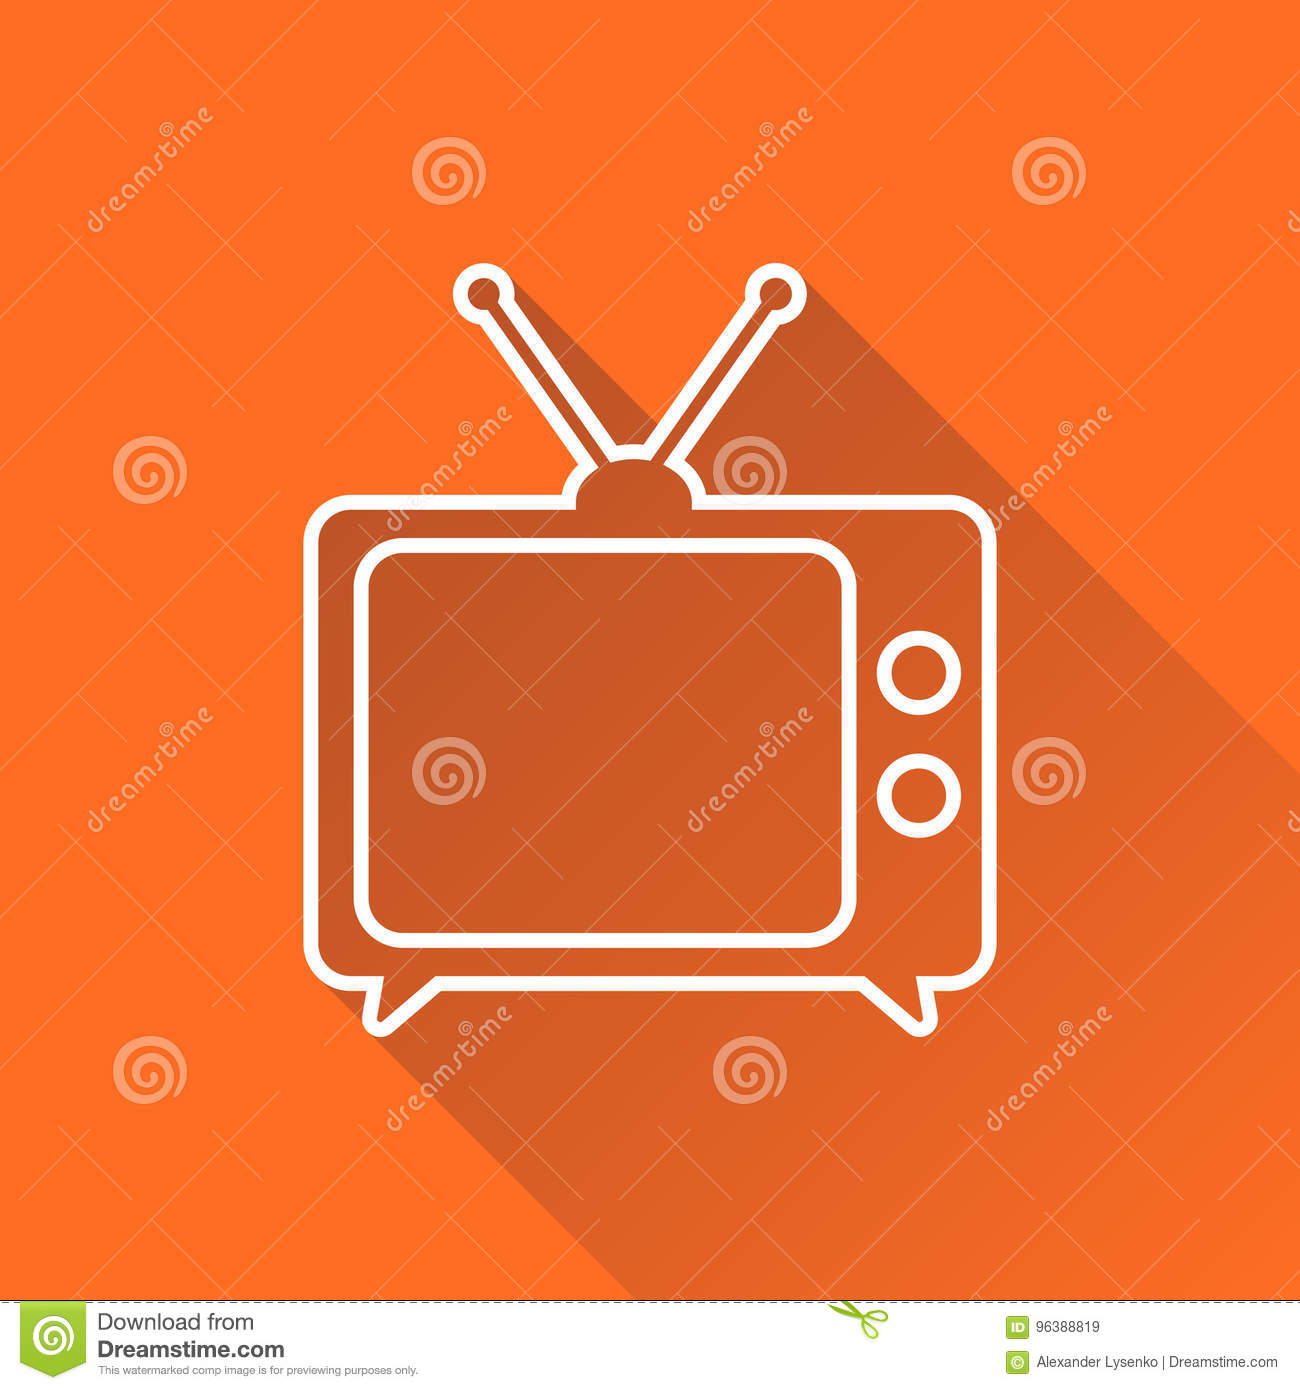 Tv Icon Vector Illustration In Line Style Isolated On Orange